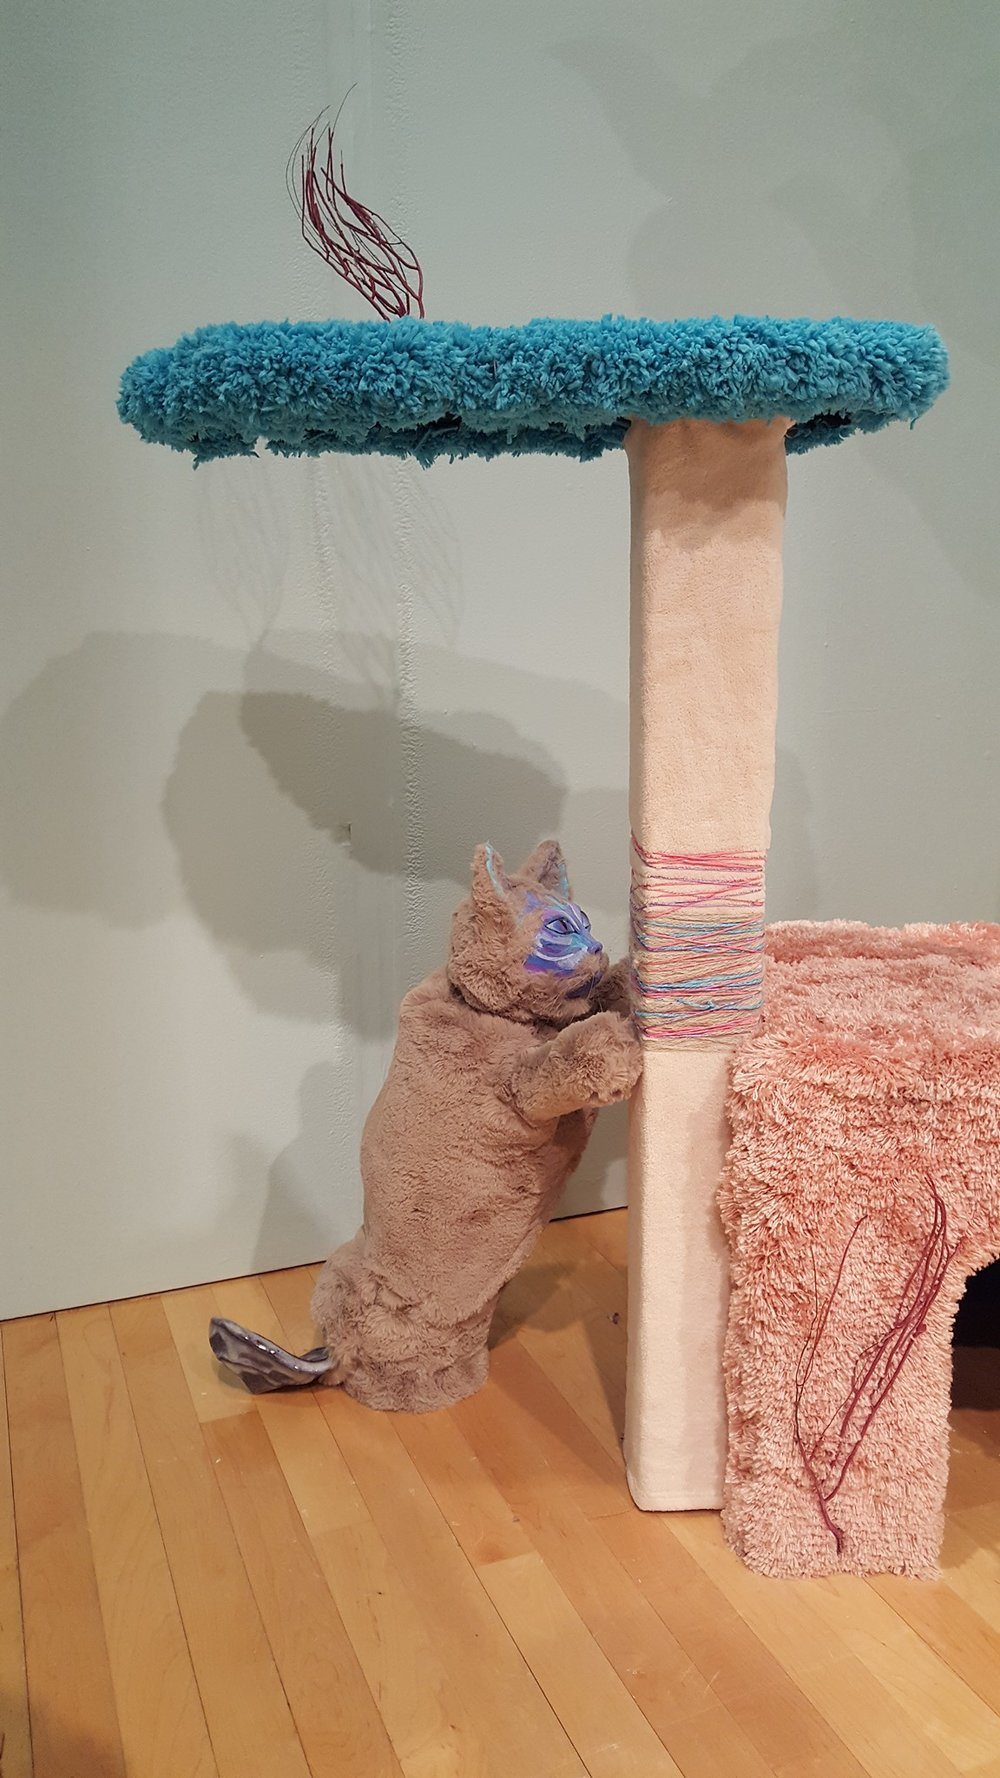 """Scratcher"" by Allison Schwarts, Ceramic, expanding foam, faux fur, acrylic paint, wood, flocking, 12.5x14x24in, 2017, $500 (tower not included)"